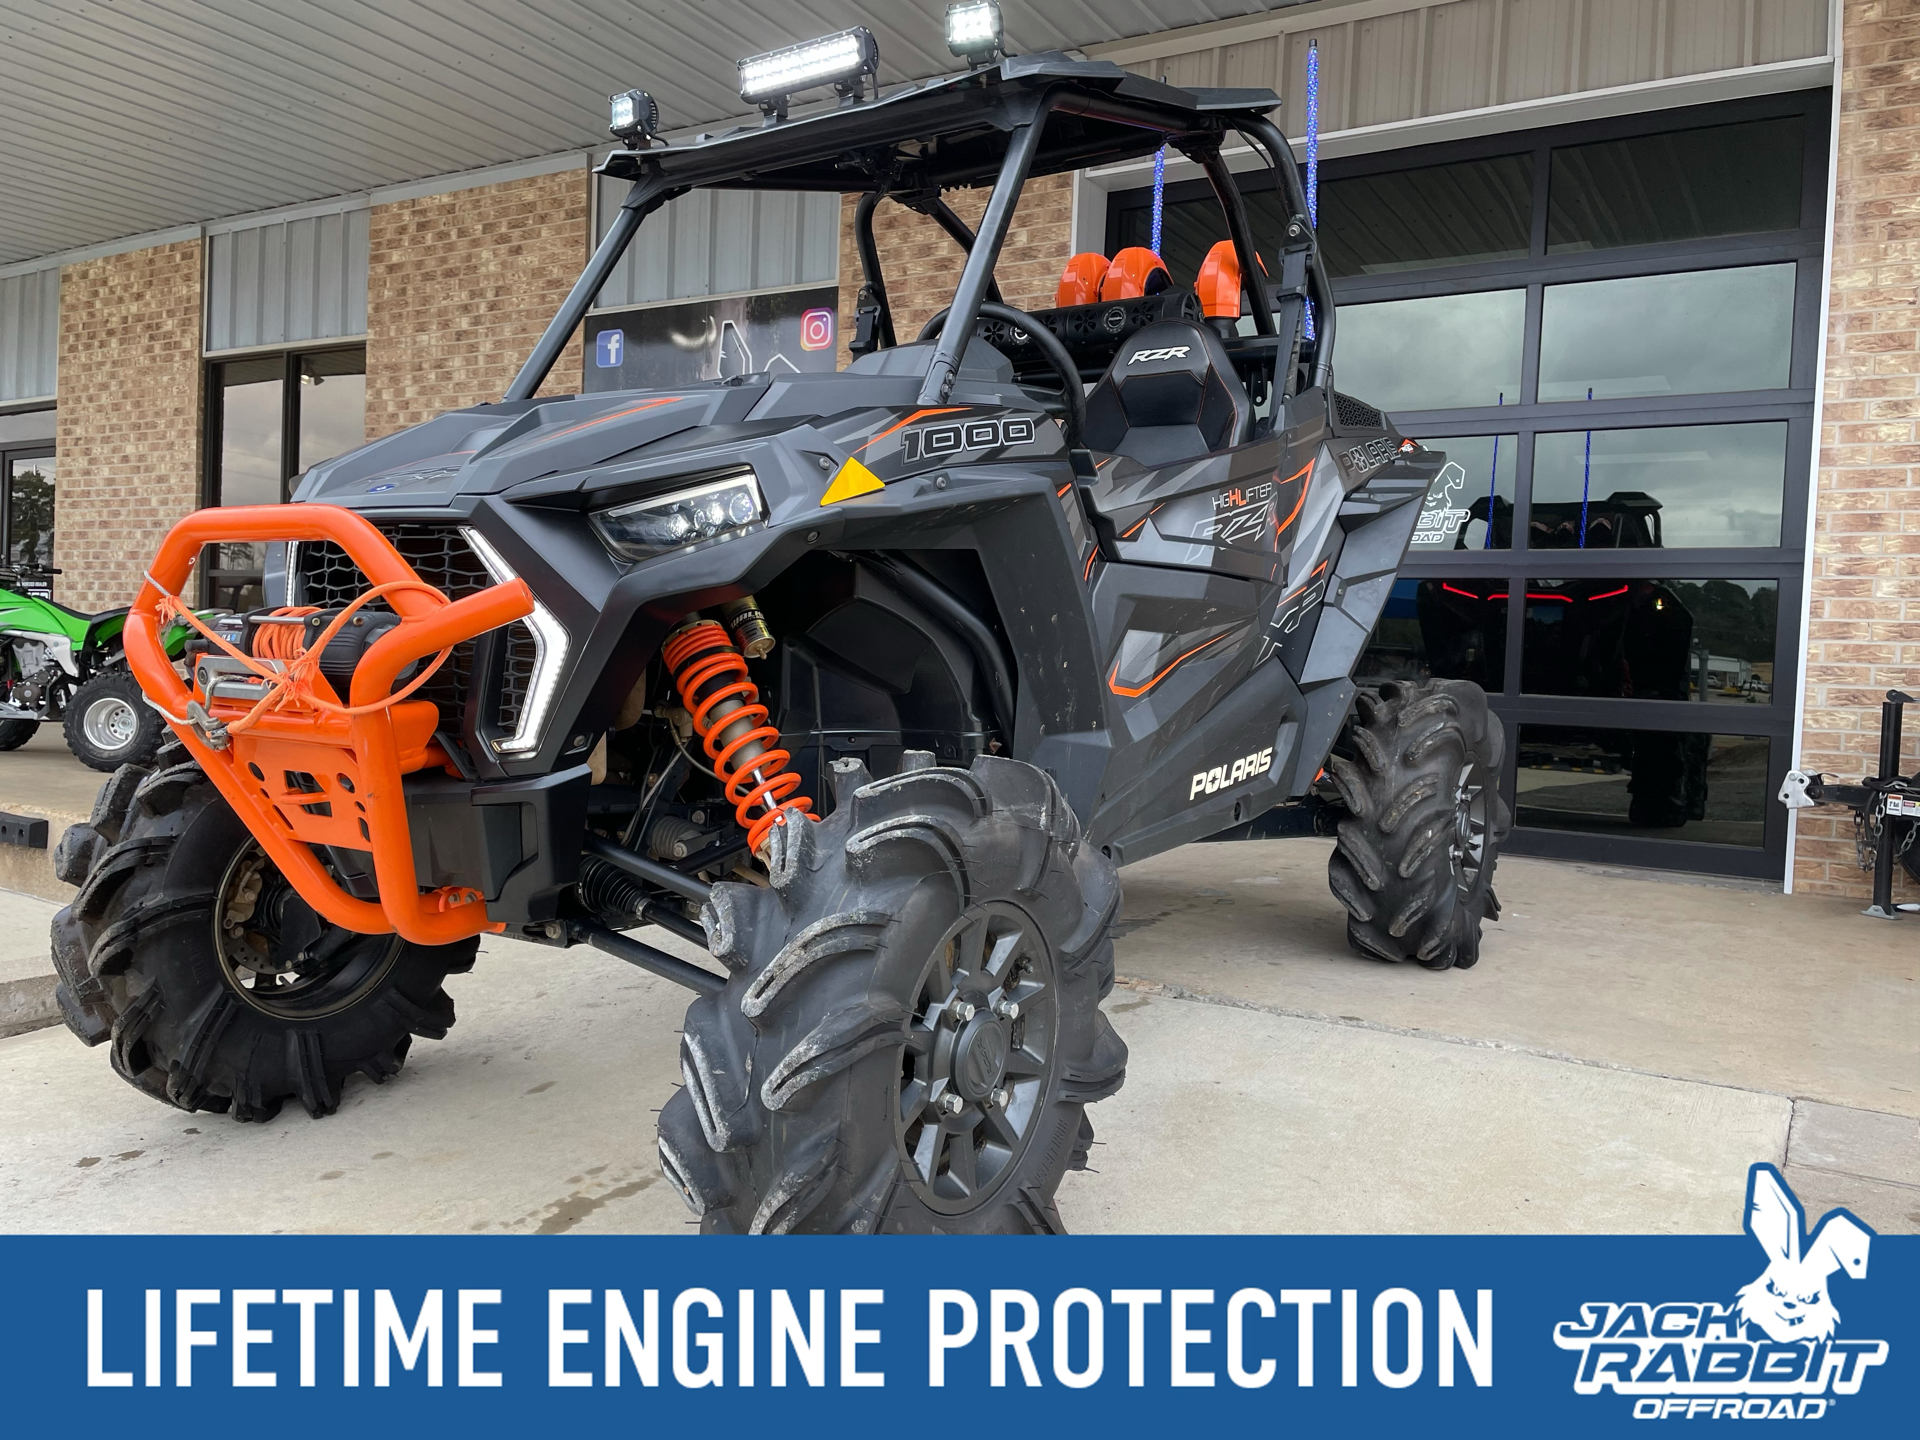 2019 Polaris RZR XP 1000 High Lifter in Marshall, Texas - Photo 1